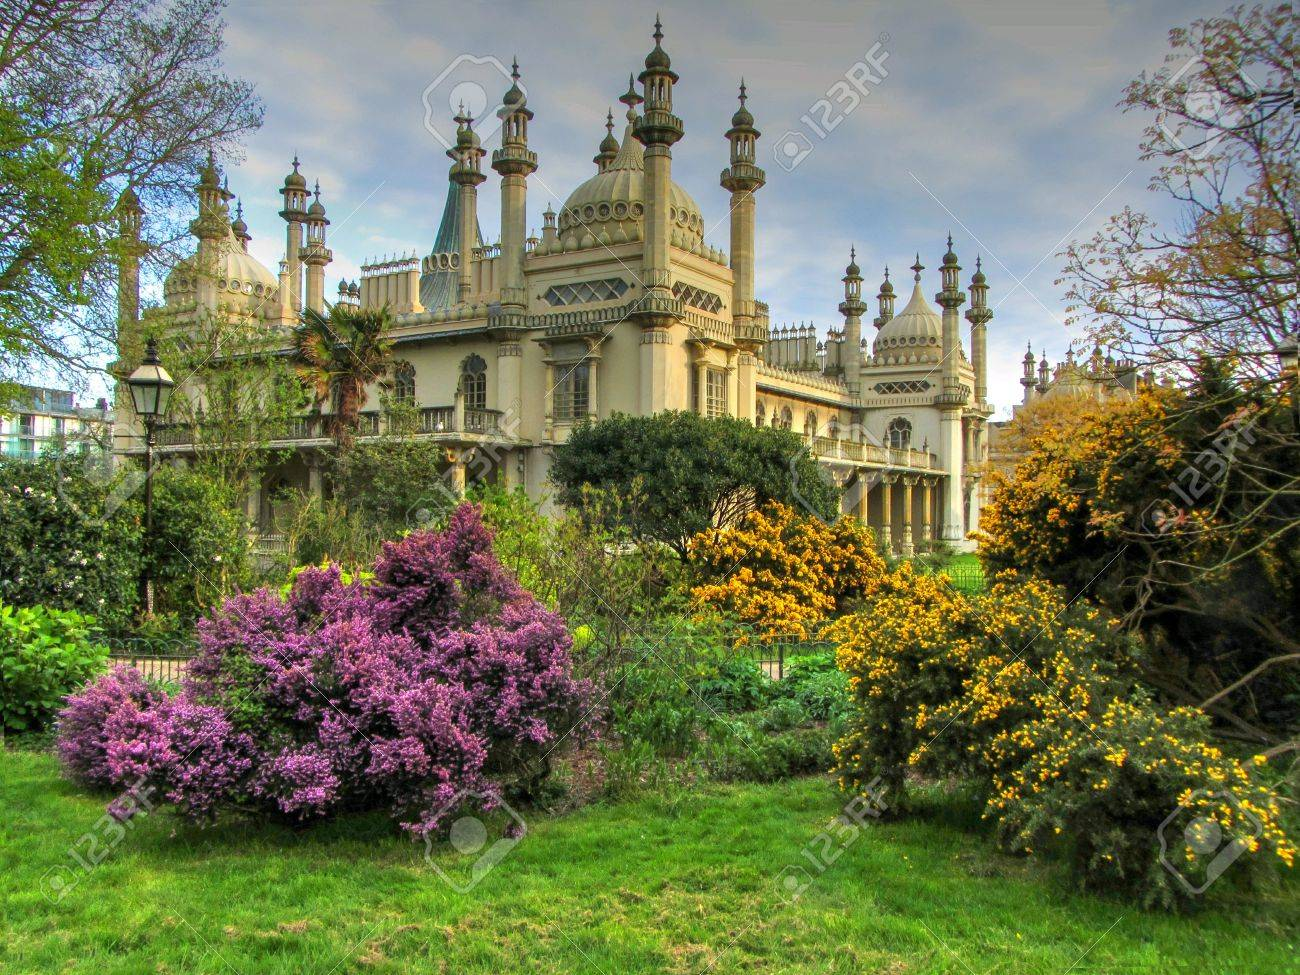 The Royal Pavilion And Gardens, Brighton, East Sussex, England,UK ...